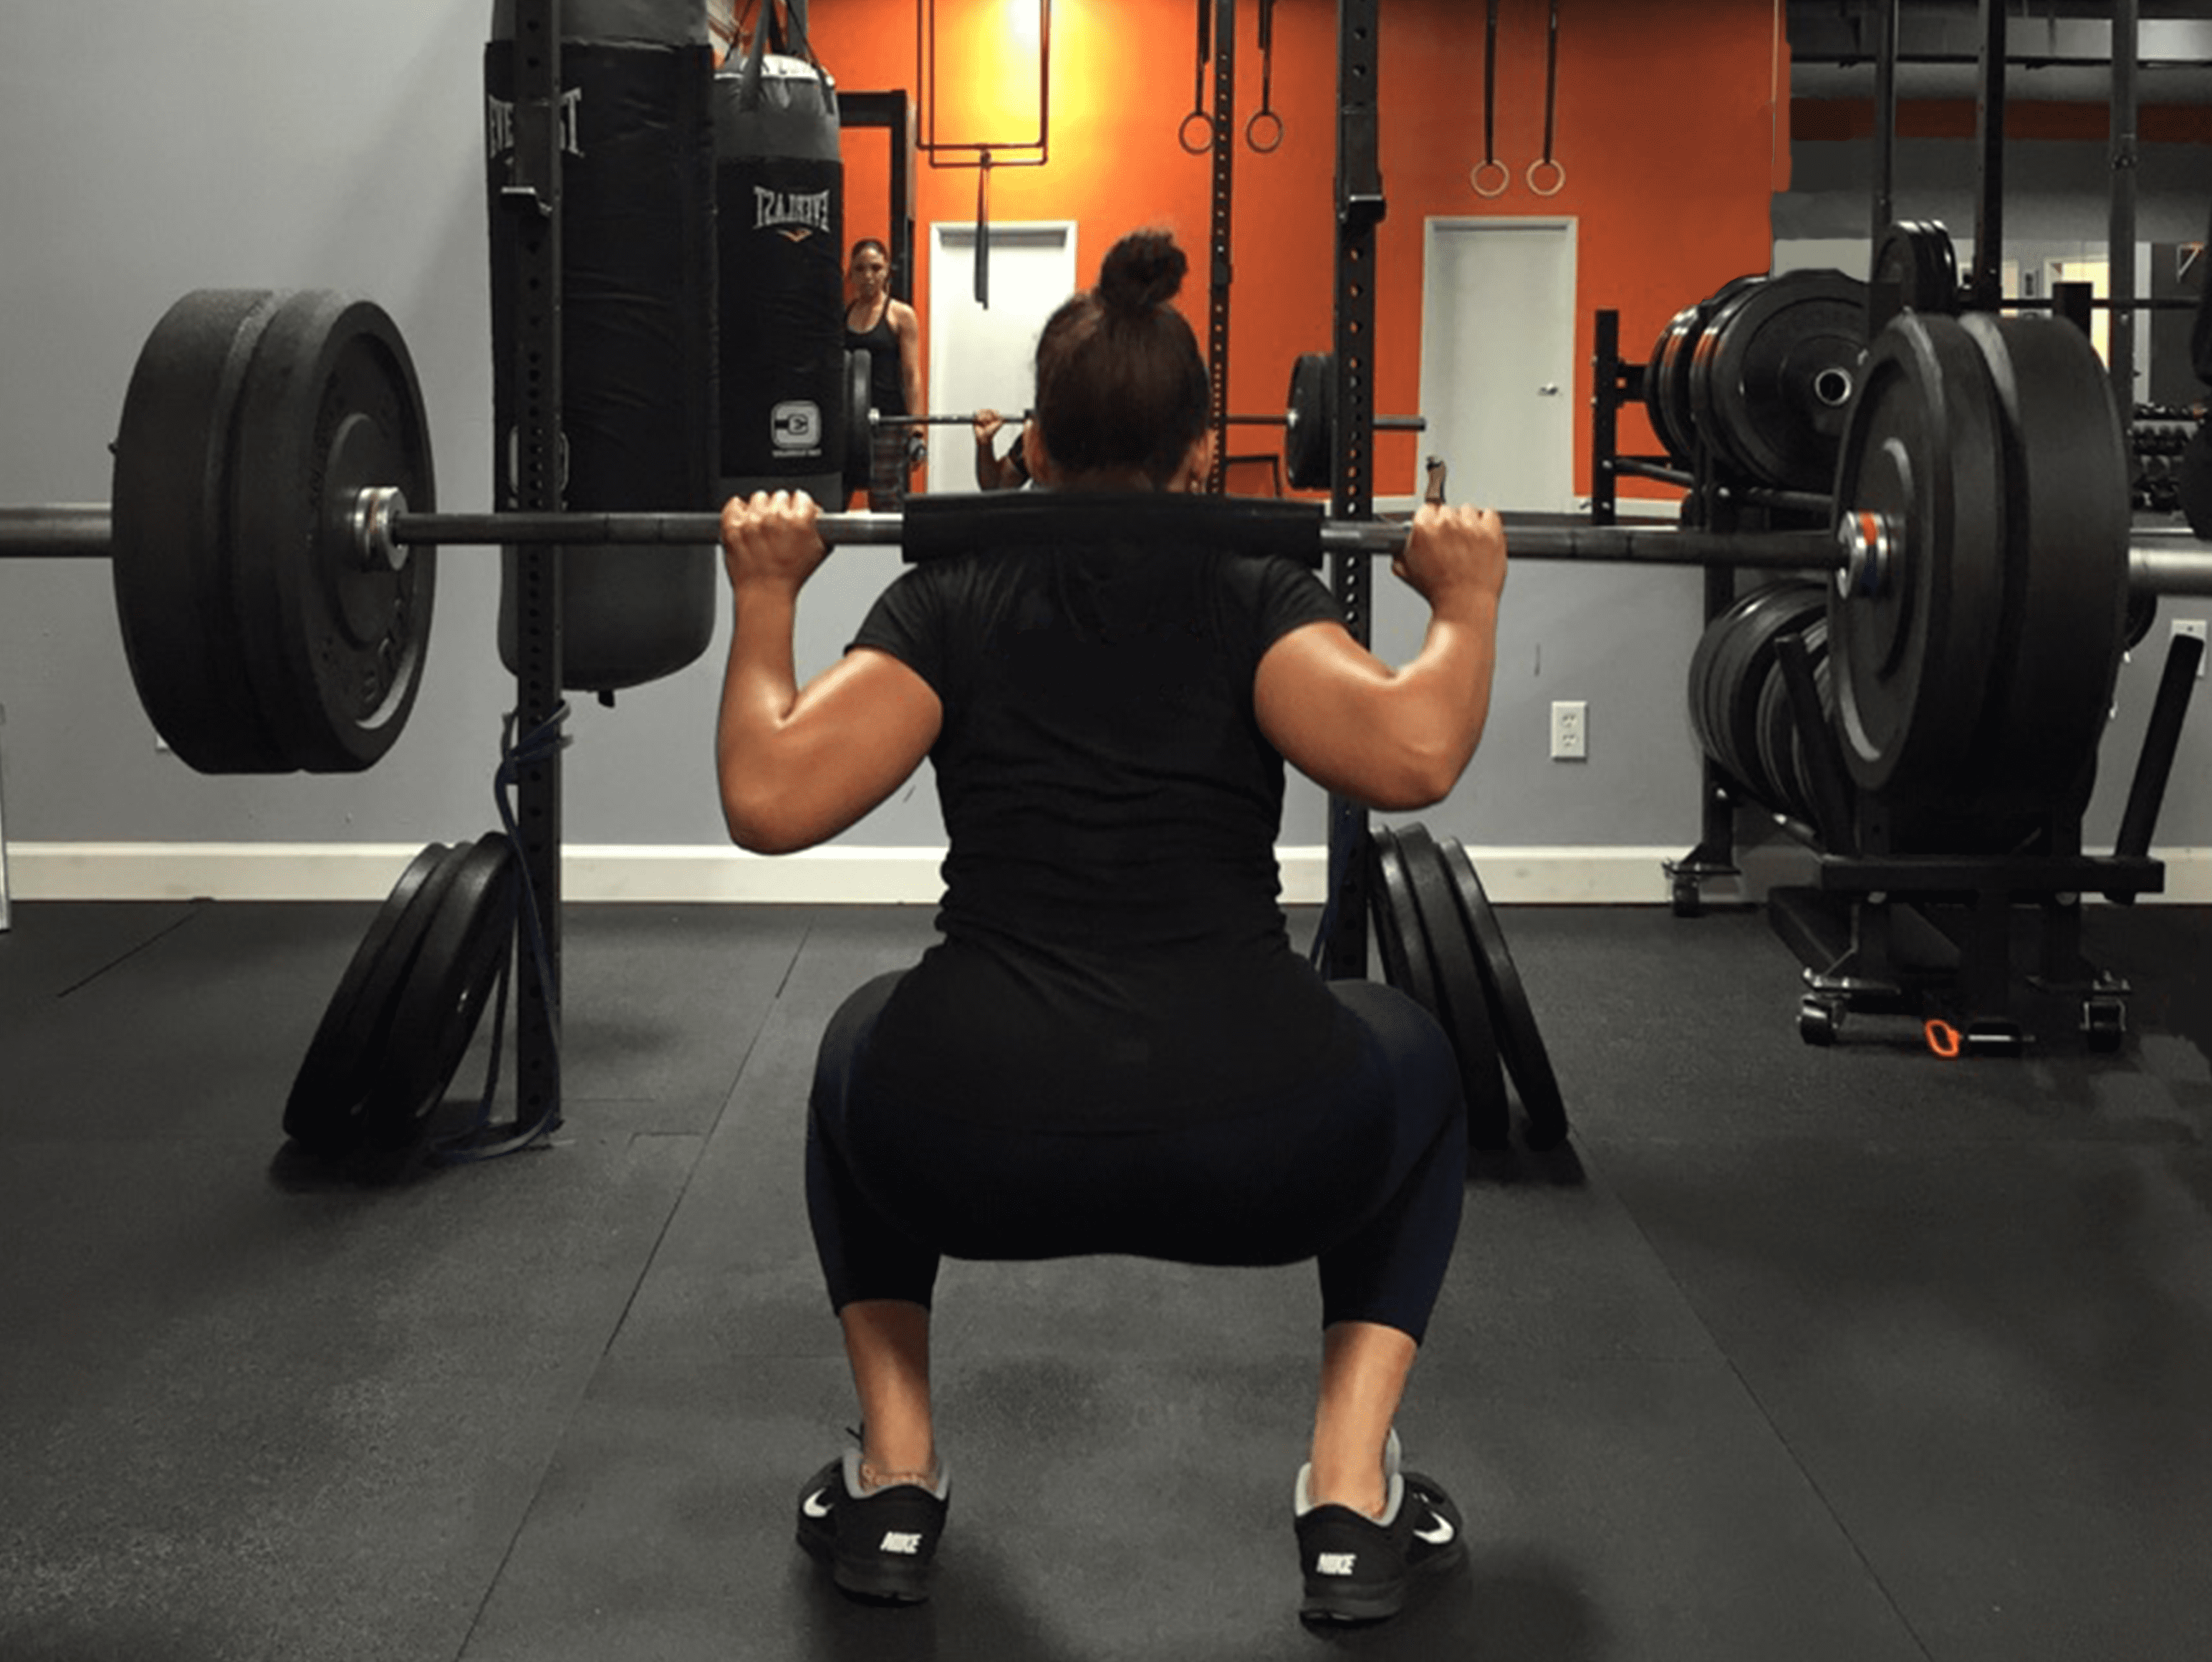 Workout - Squat Pose